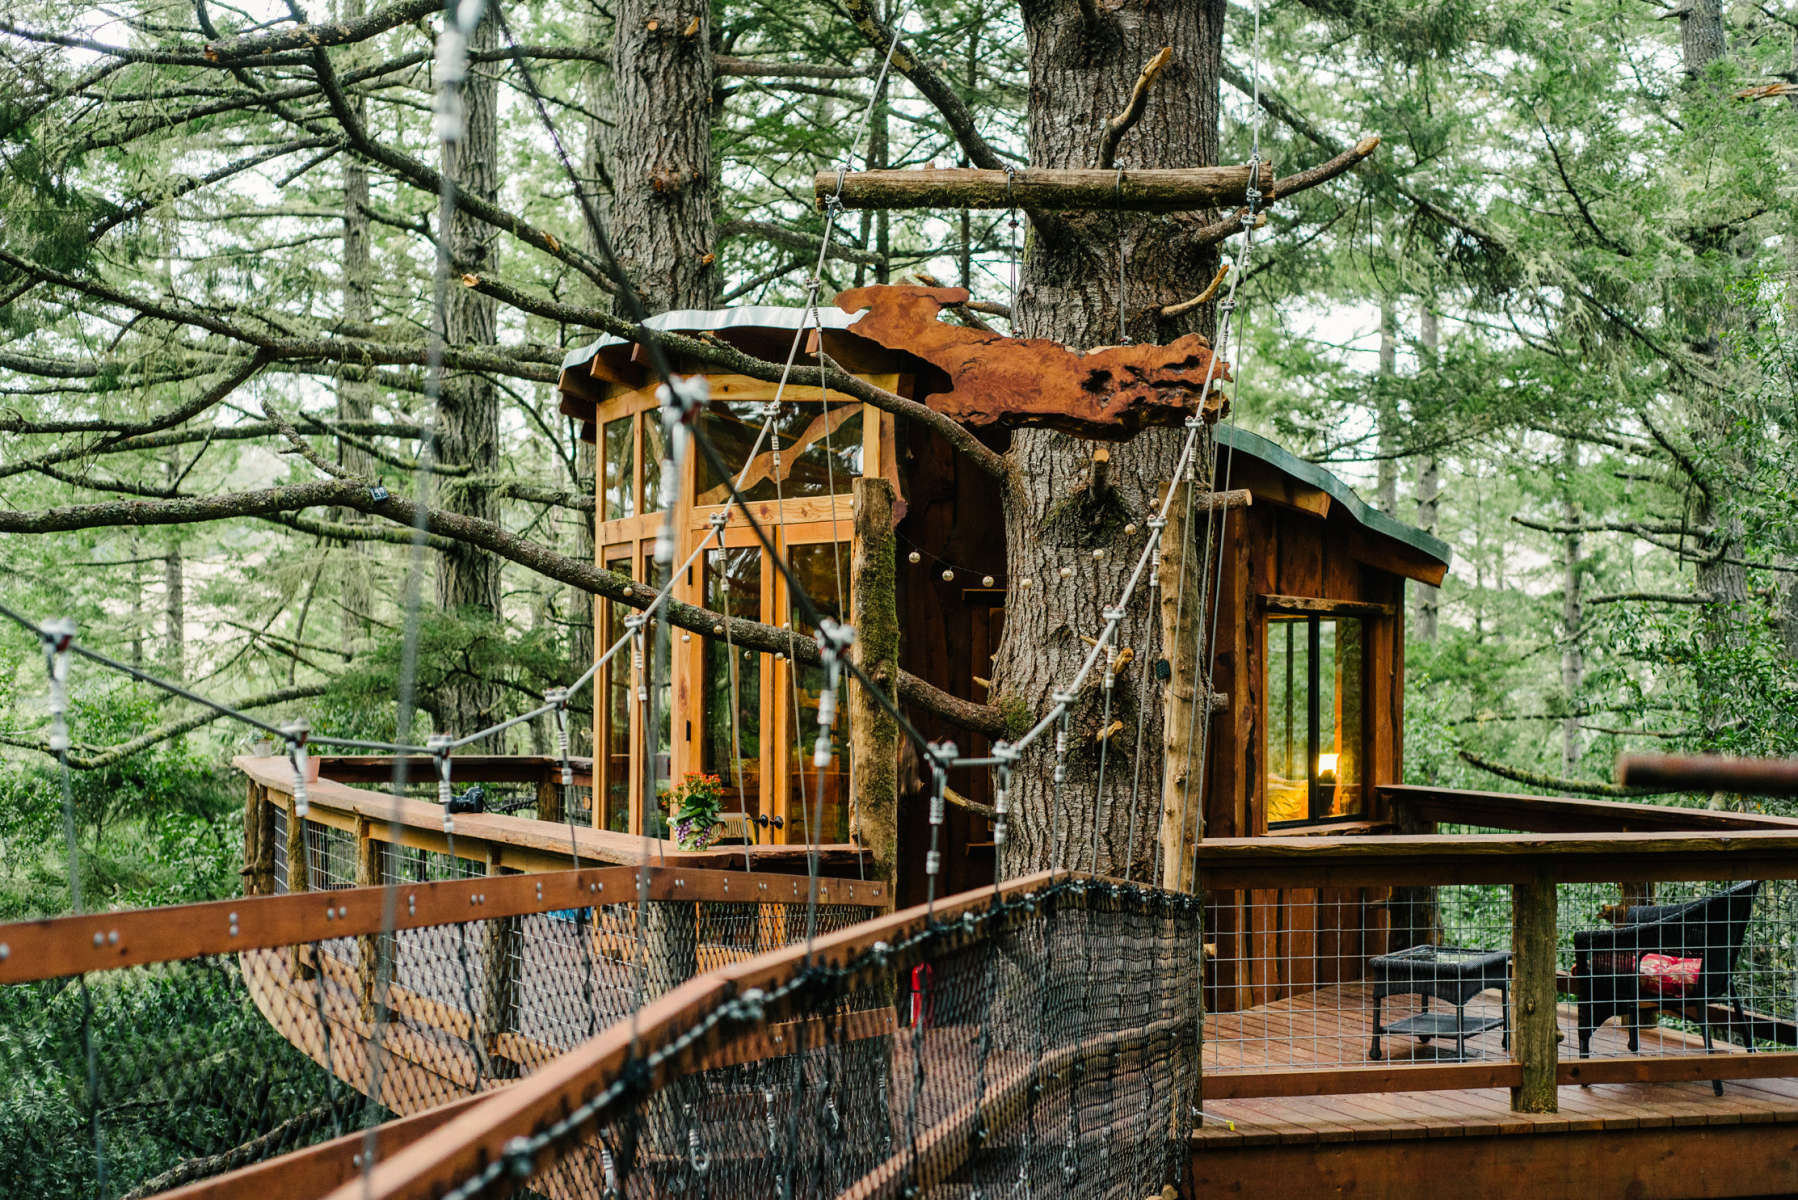 Beau ... Julian B.u0027s Photo At Eagleu0027s Nest Treehouse Farmstay ...